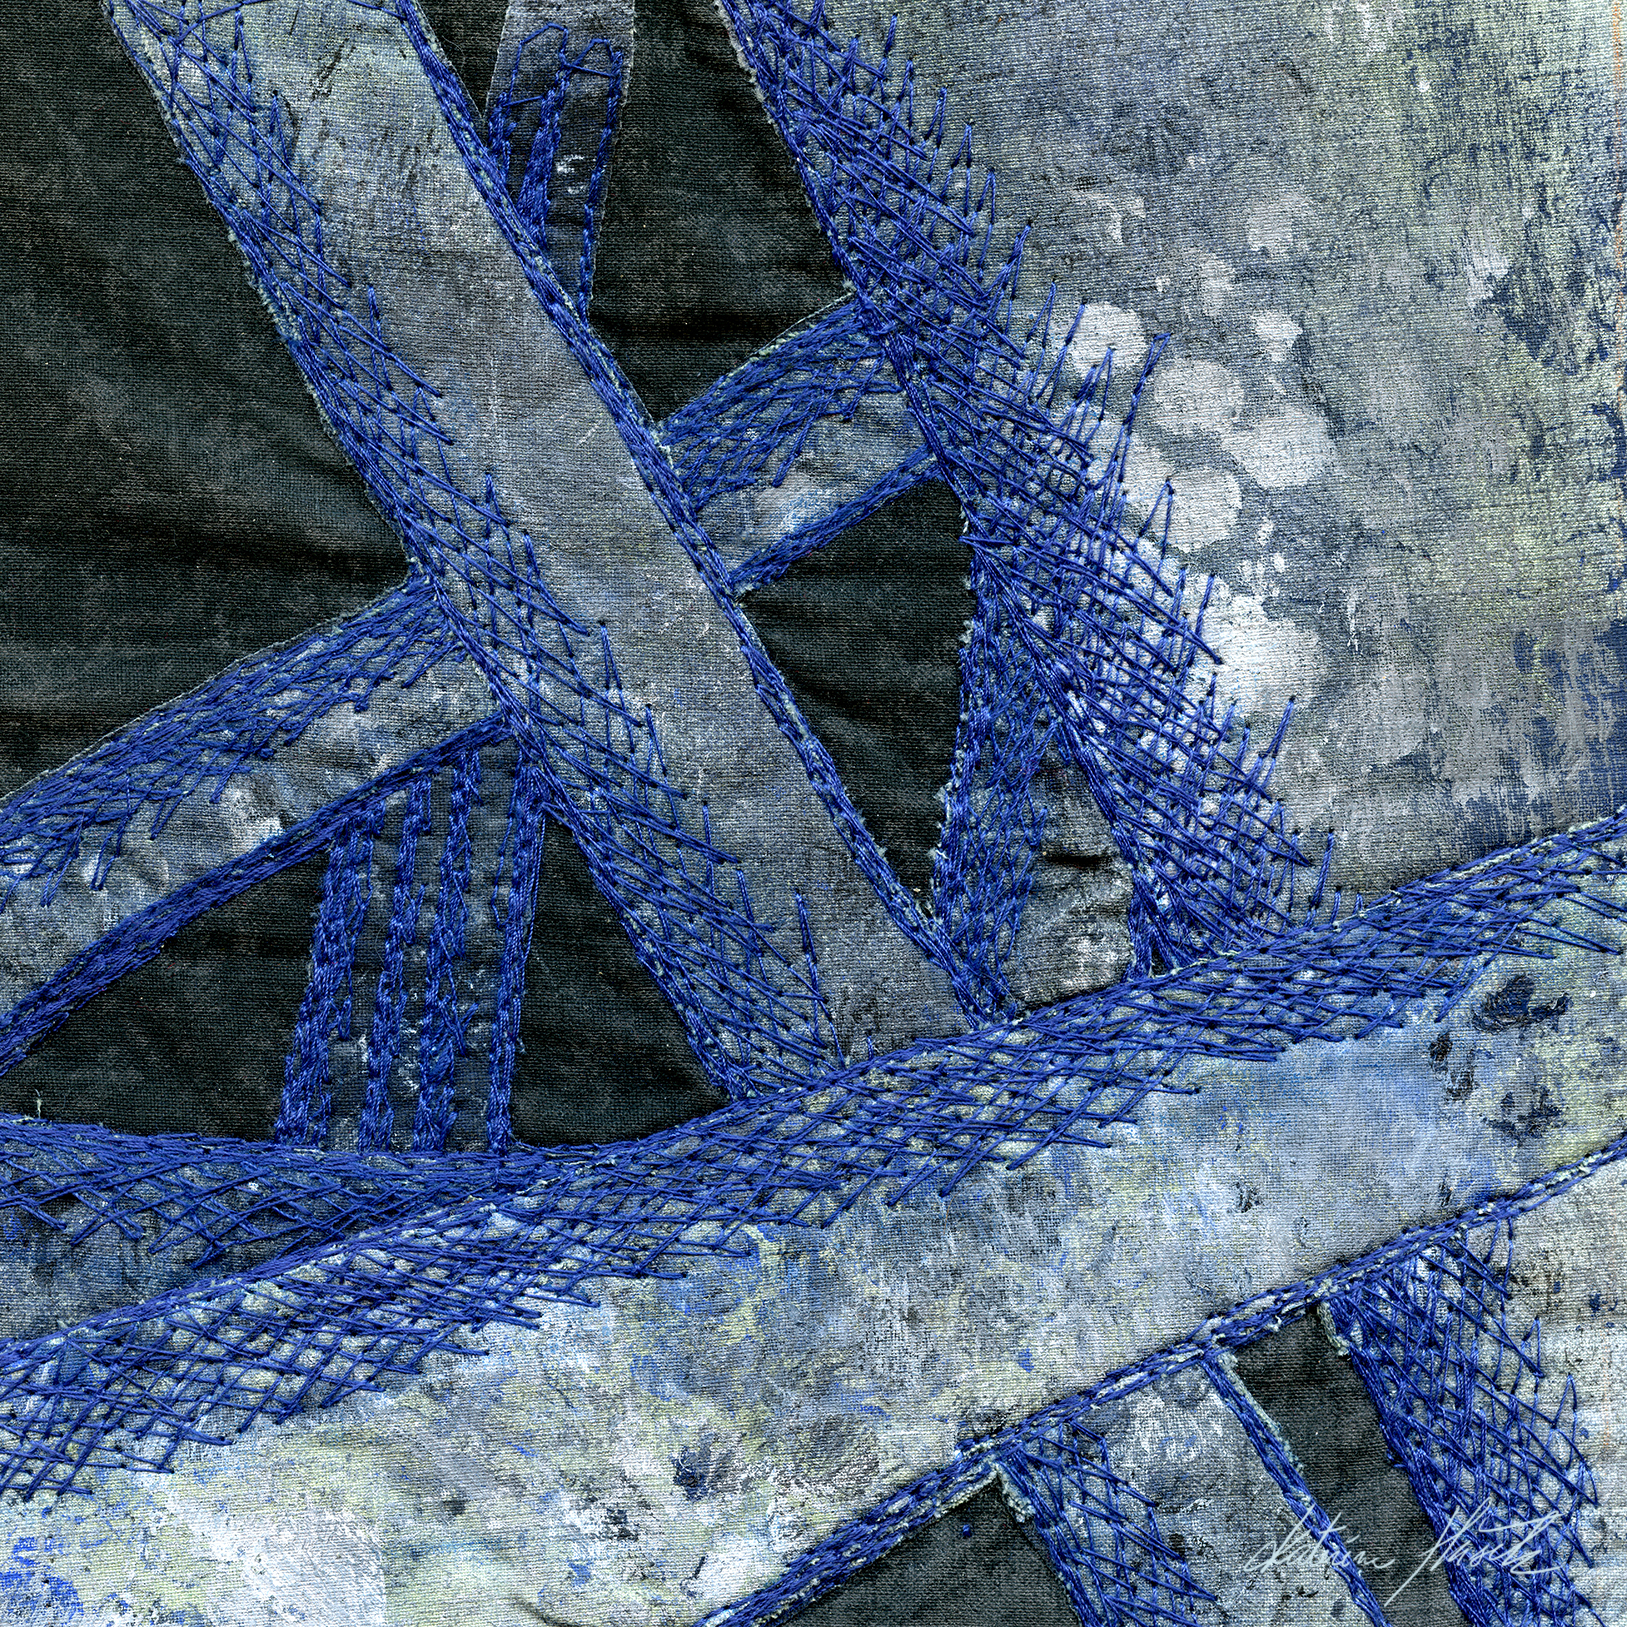 A textile artwork titled Drifting through spacea created by Katerina Hasek.